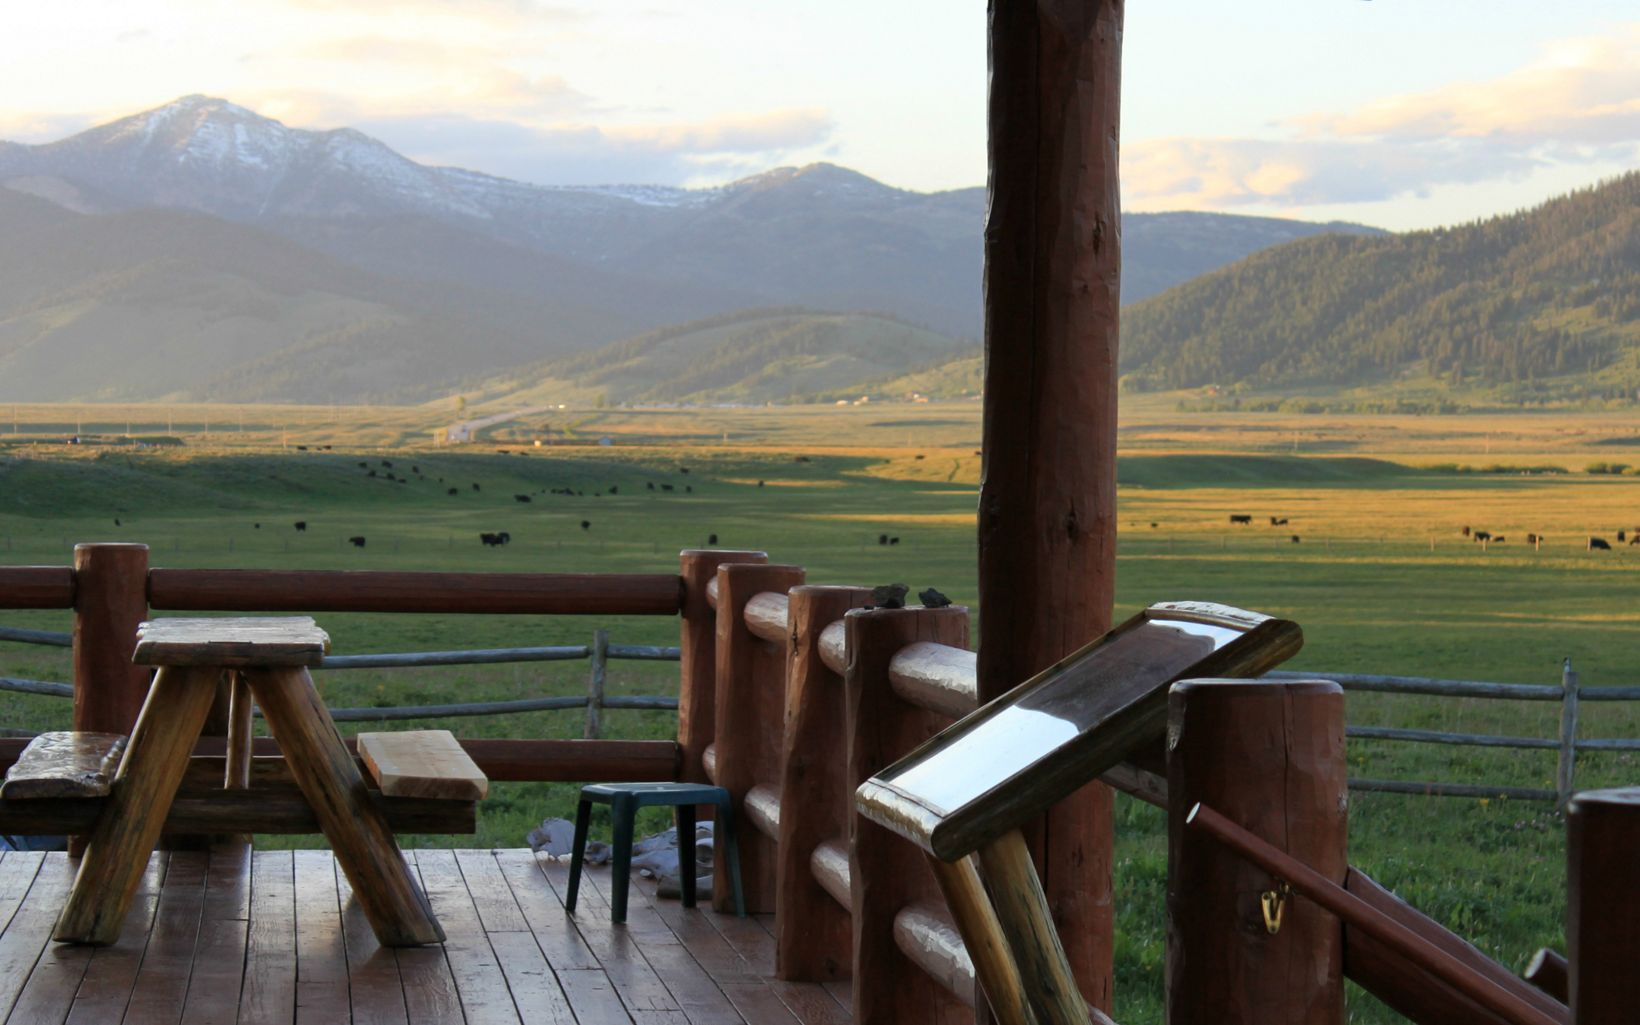 Log cabin porch with a picnic table and a view of cattle grazing in fields and snow-capped mountains in the distance.